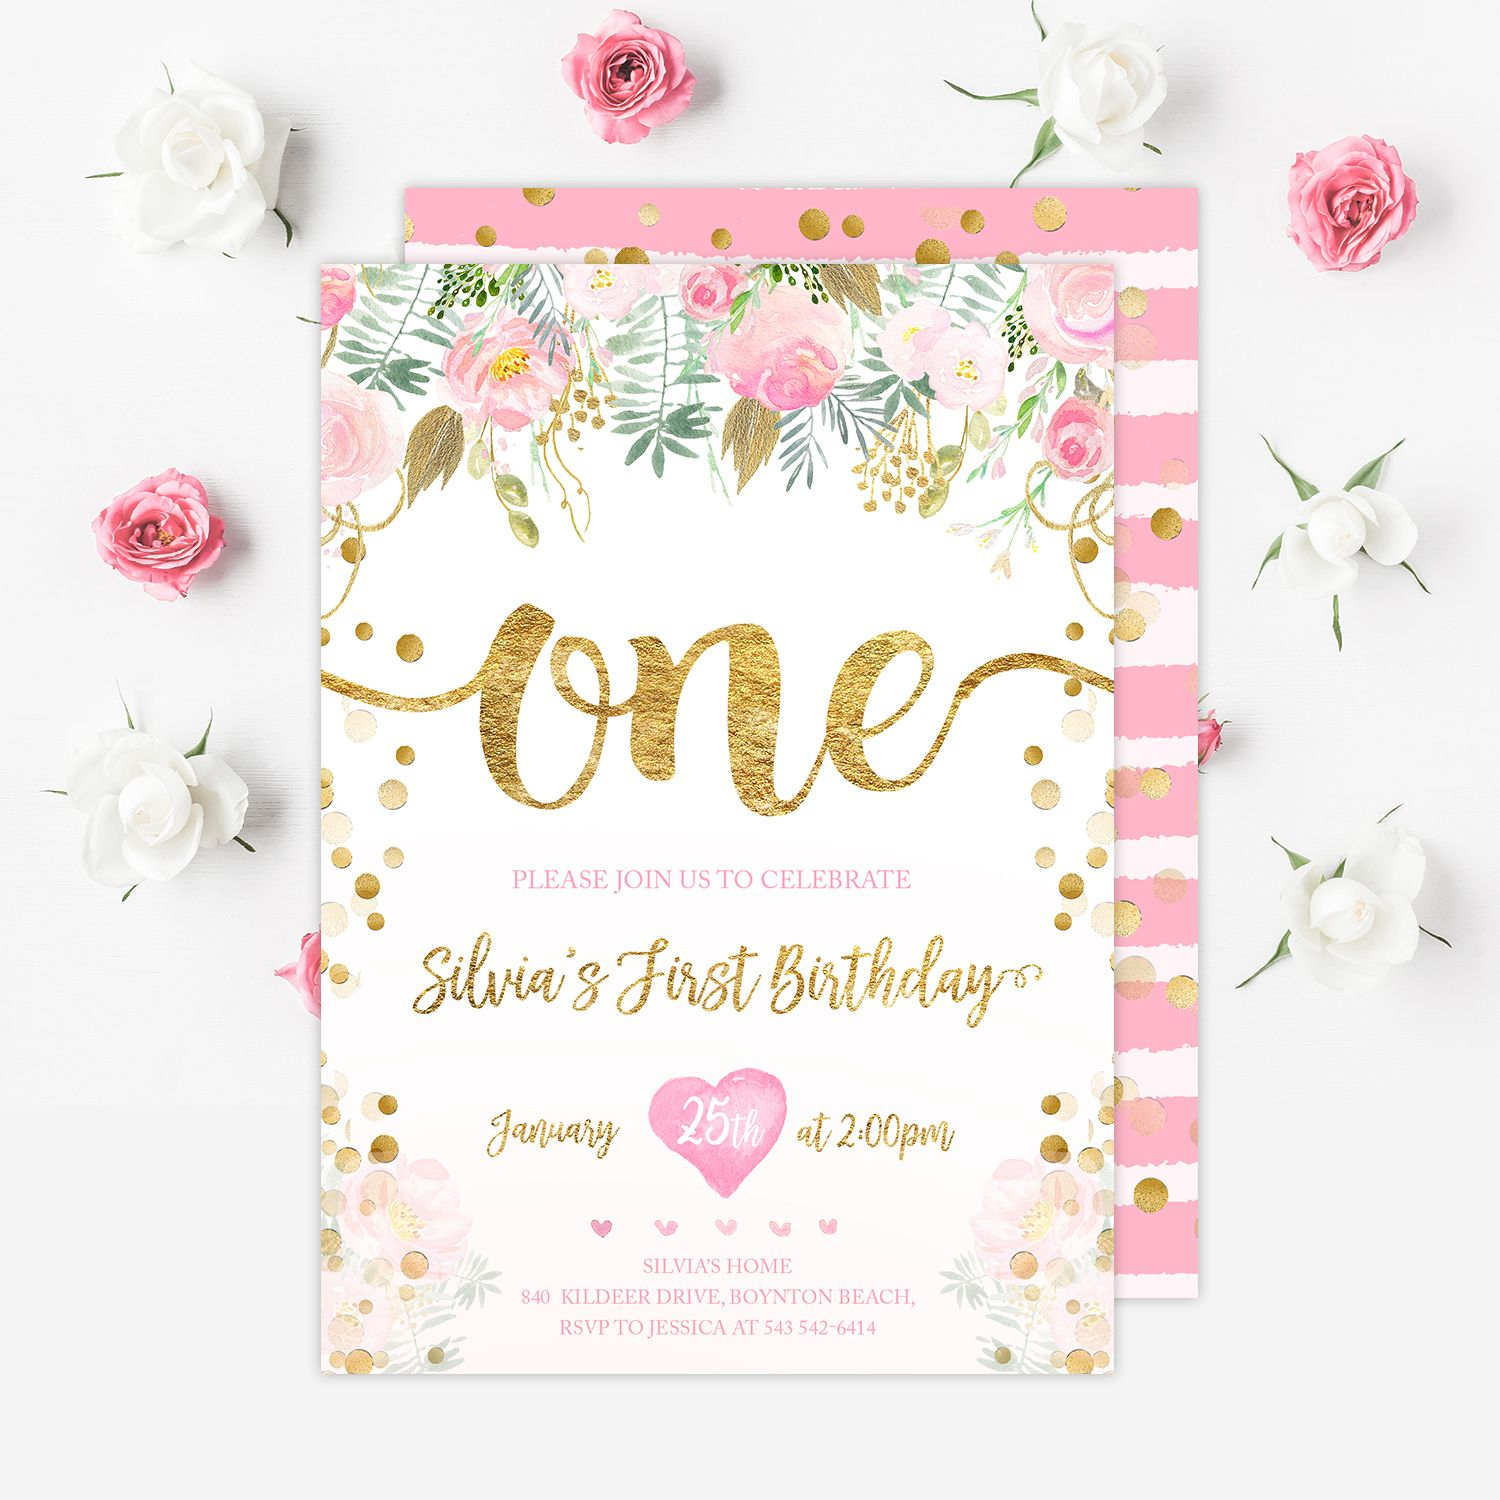 First Birthday Invitation Girl First Pink And Gold Glitter First Birthday Invitation First Birthday Invitations Glitter First Birthday Birthday Invitations